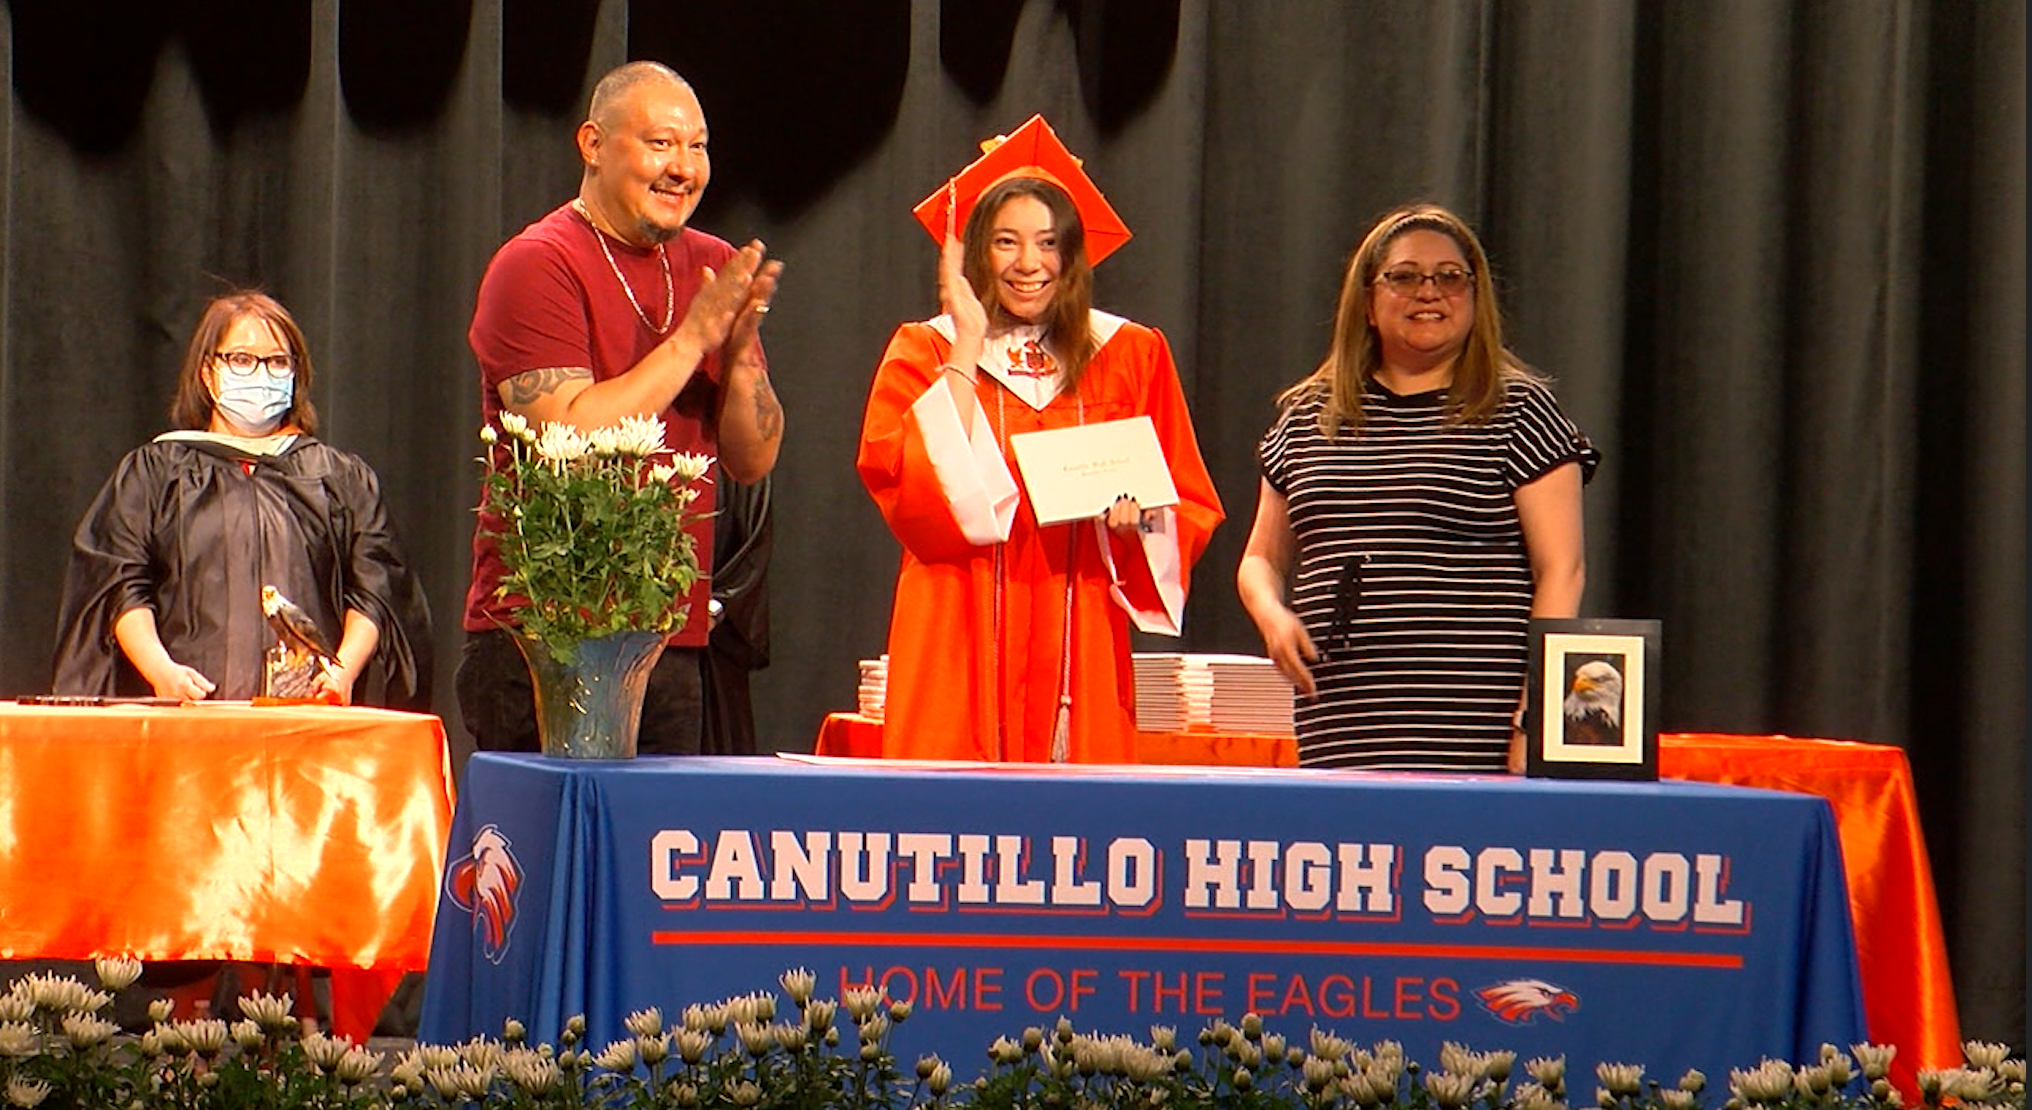 Canutillo High School 2020 commencement ceremony